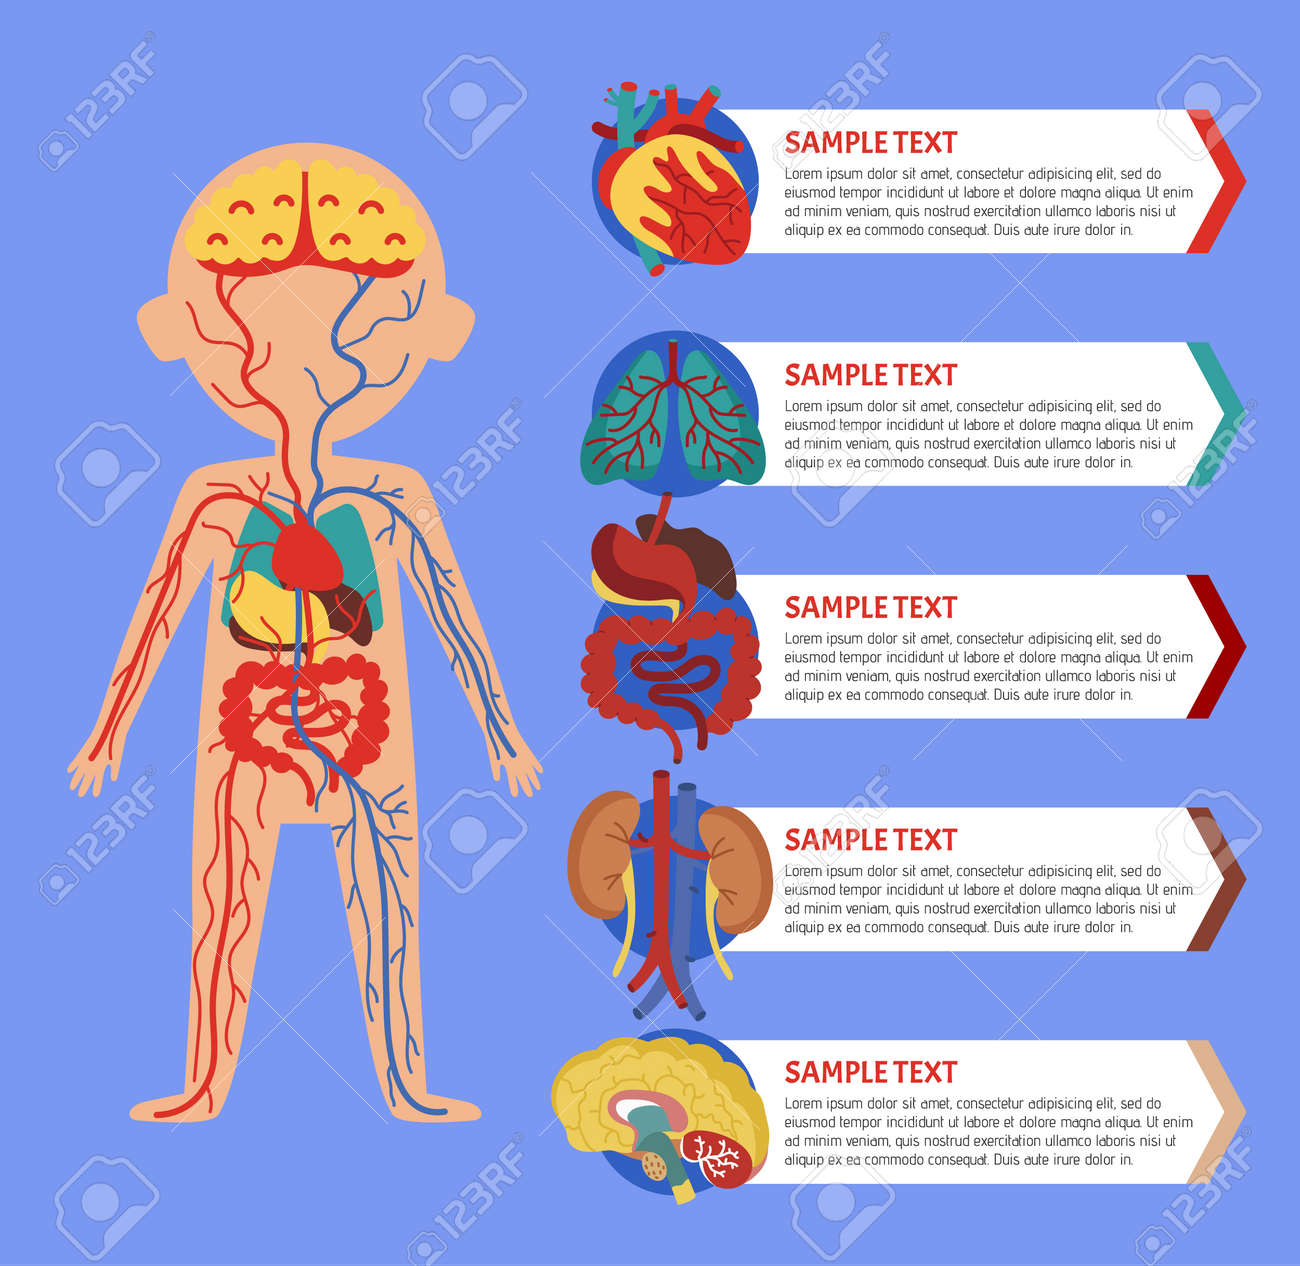 Health Medical Poster With Human Body Anatomy. Kidney, Lung ...